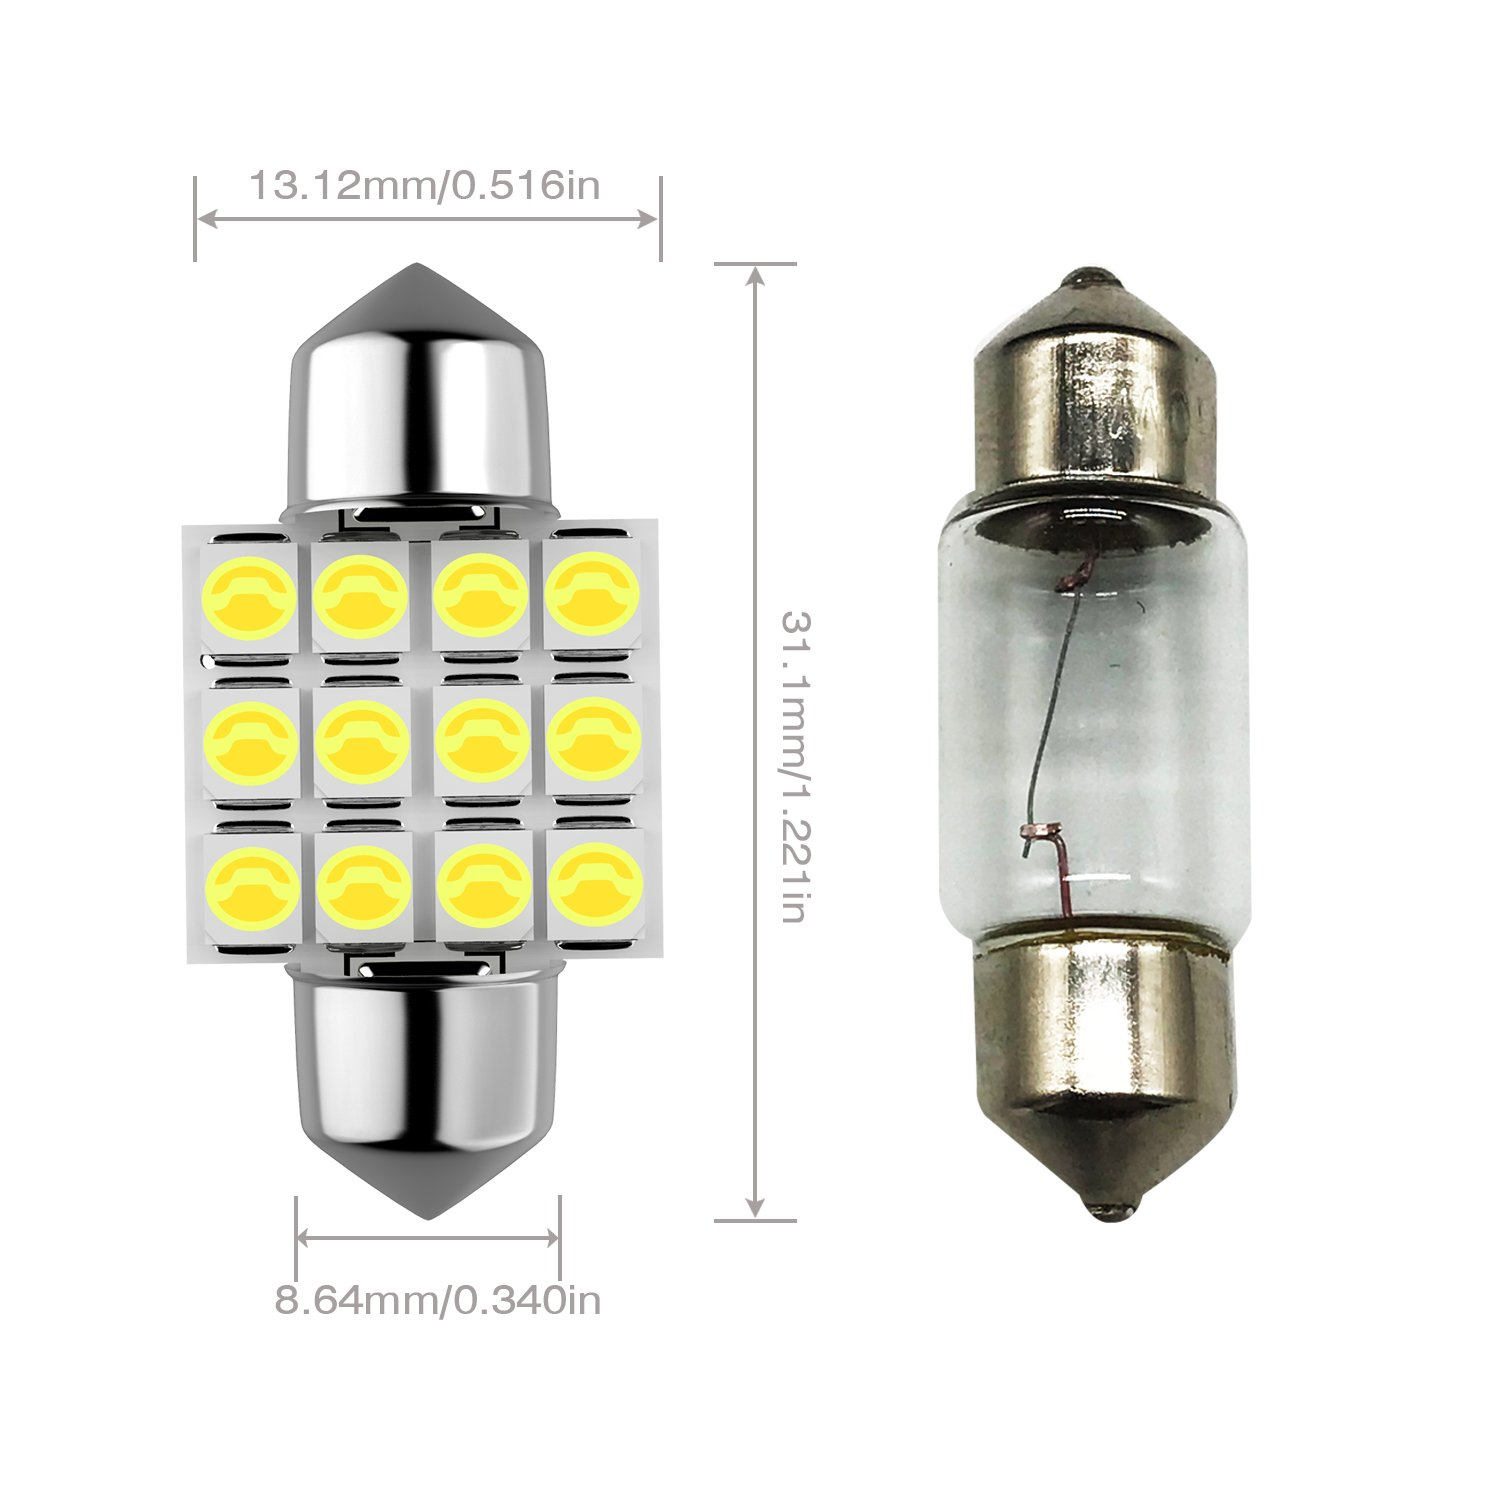 Trunk Light(Pack of 8) T10 194 168 2825 W5W 3SMD LED Bulbs White 6000k Super Bright 3030 Chipsets Used for Dome Light Map Light License Plate Lights Door Courtesy Light